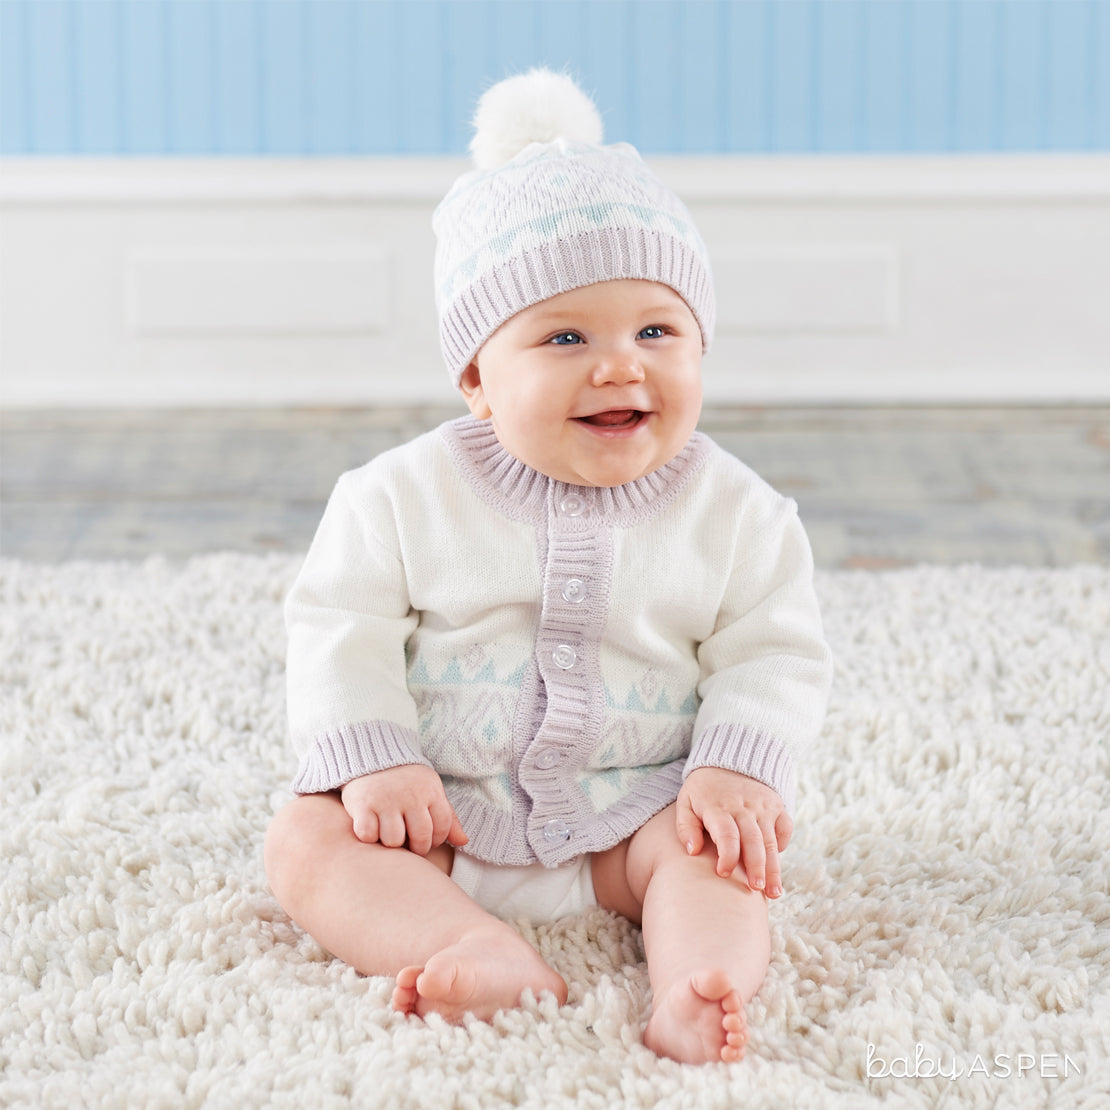 White Fair Isle Cardigan and Pom Pom Hat | Holiday Gift Guide: Top Baby Picks for 2017 | Baby Aspen